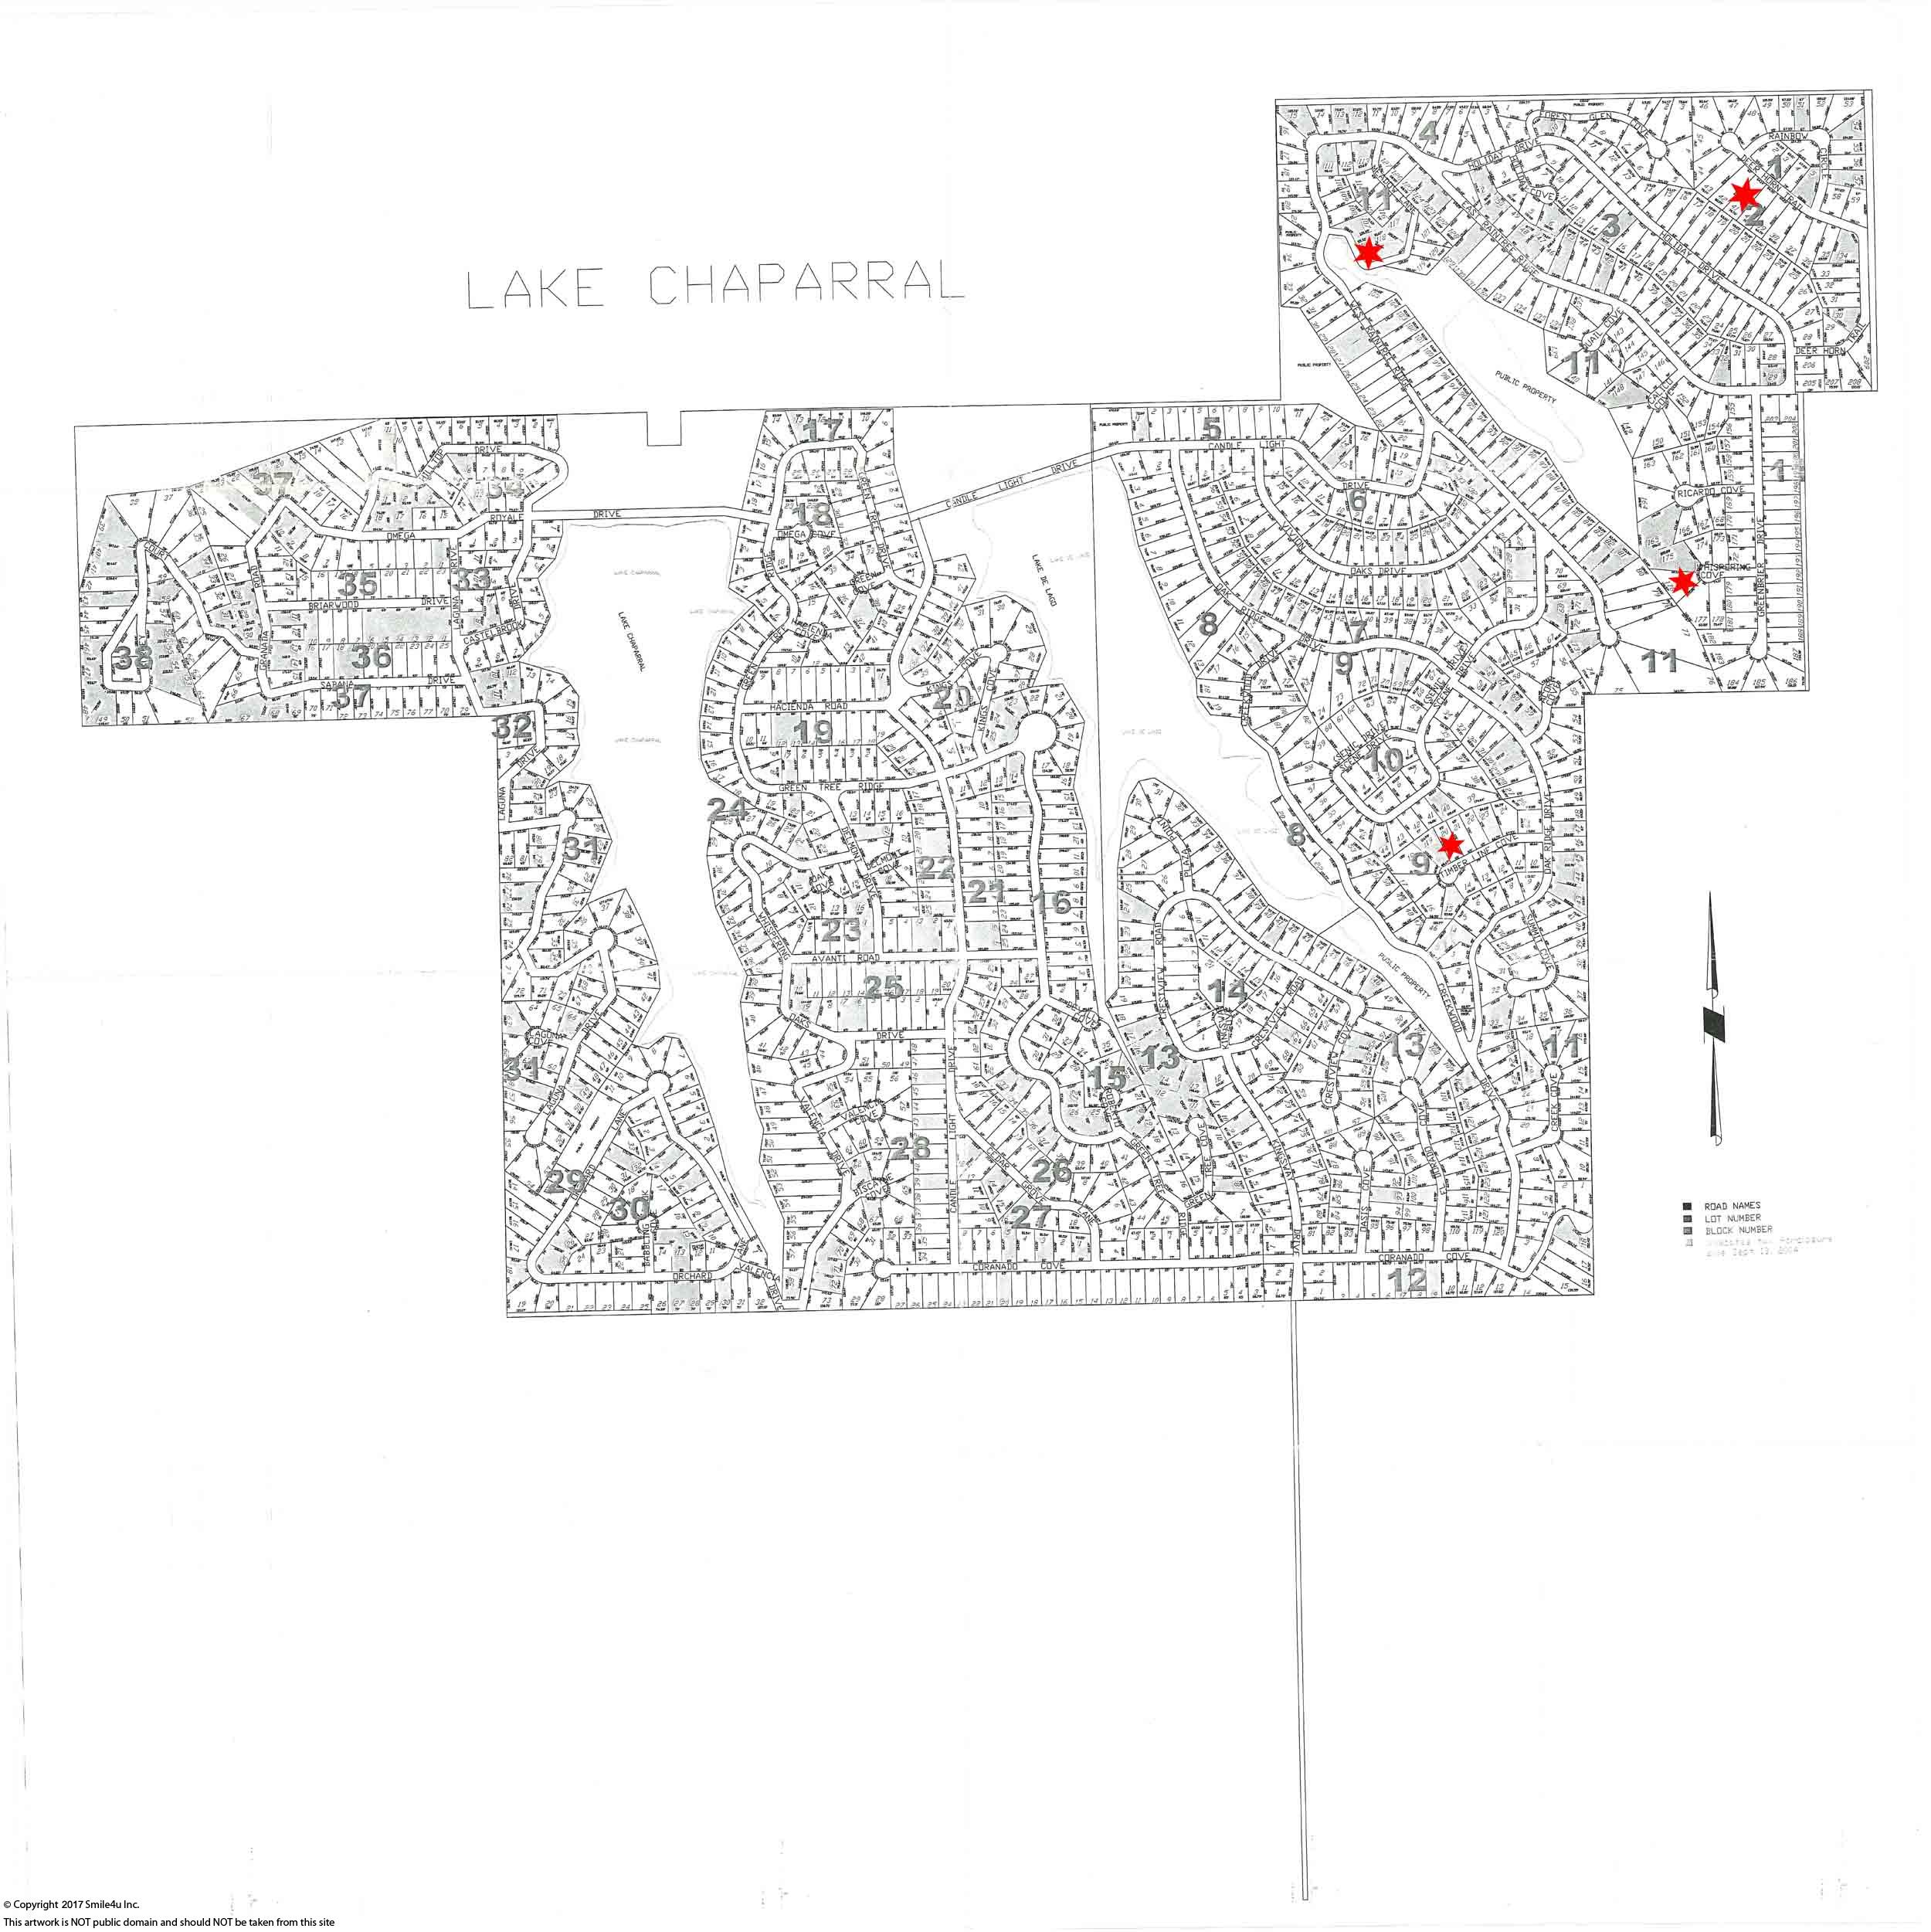 698000_watermarked_lake chaparral full subdivision map.jpg